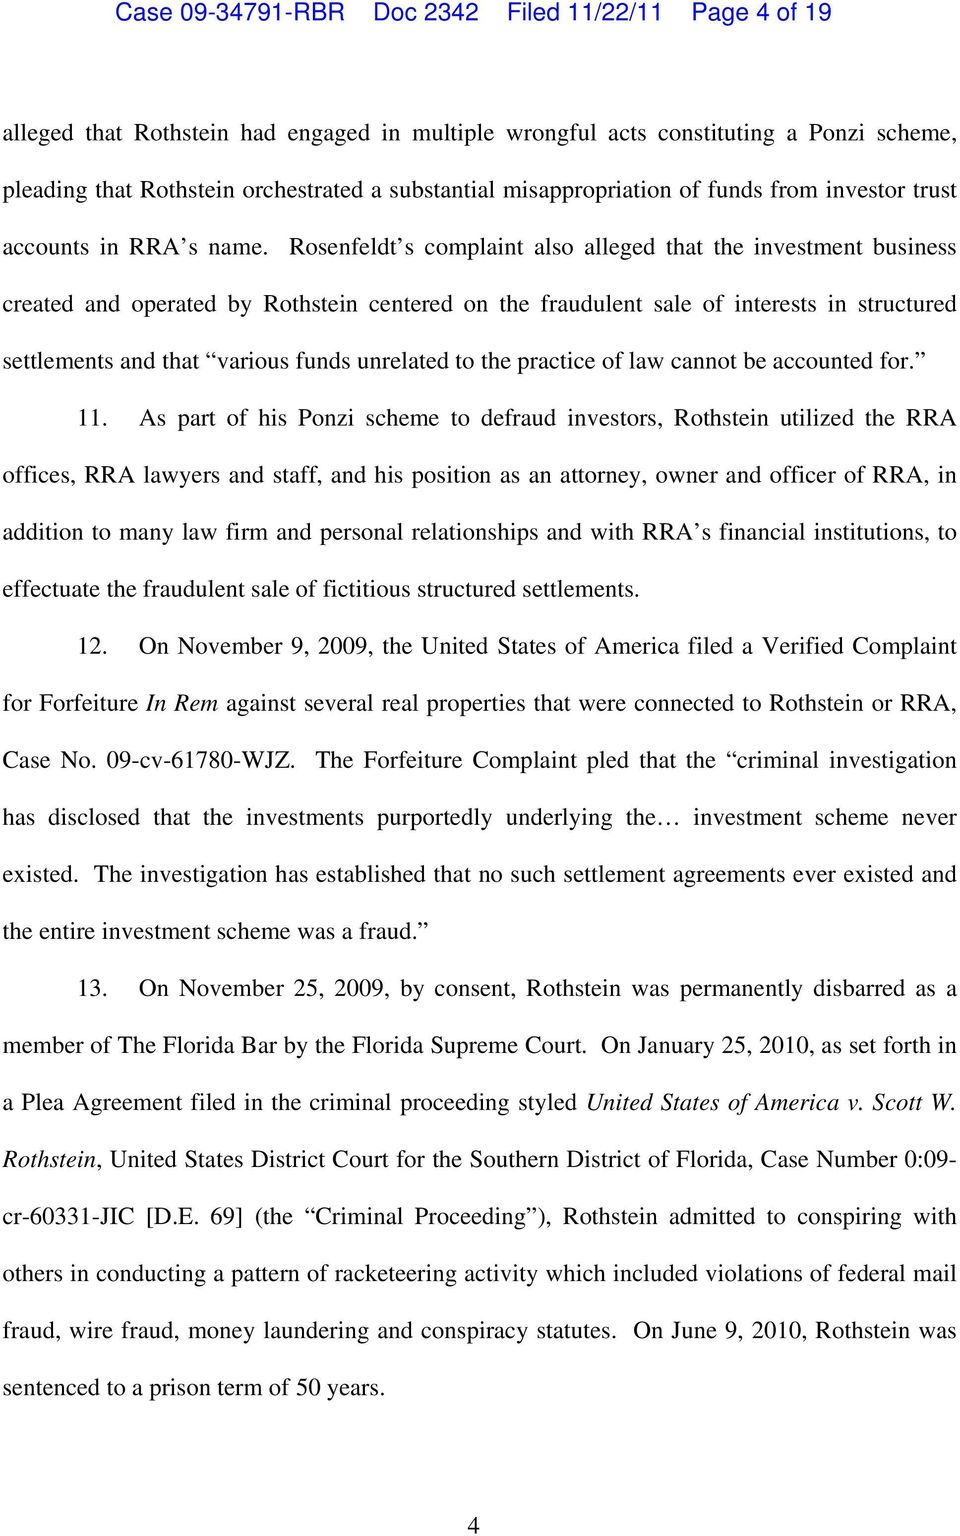 Rosenfeldt s complaint also alleged that the investment business created and operated by Rothstein centered on the fraudulent sale of interests in structured settlements and that various funds